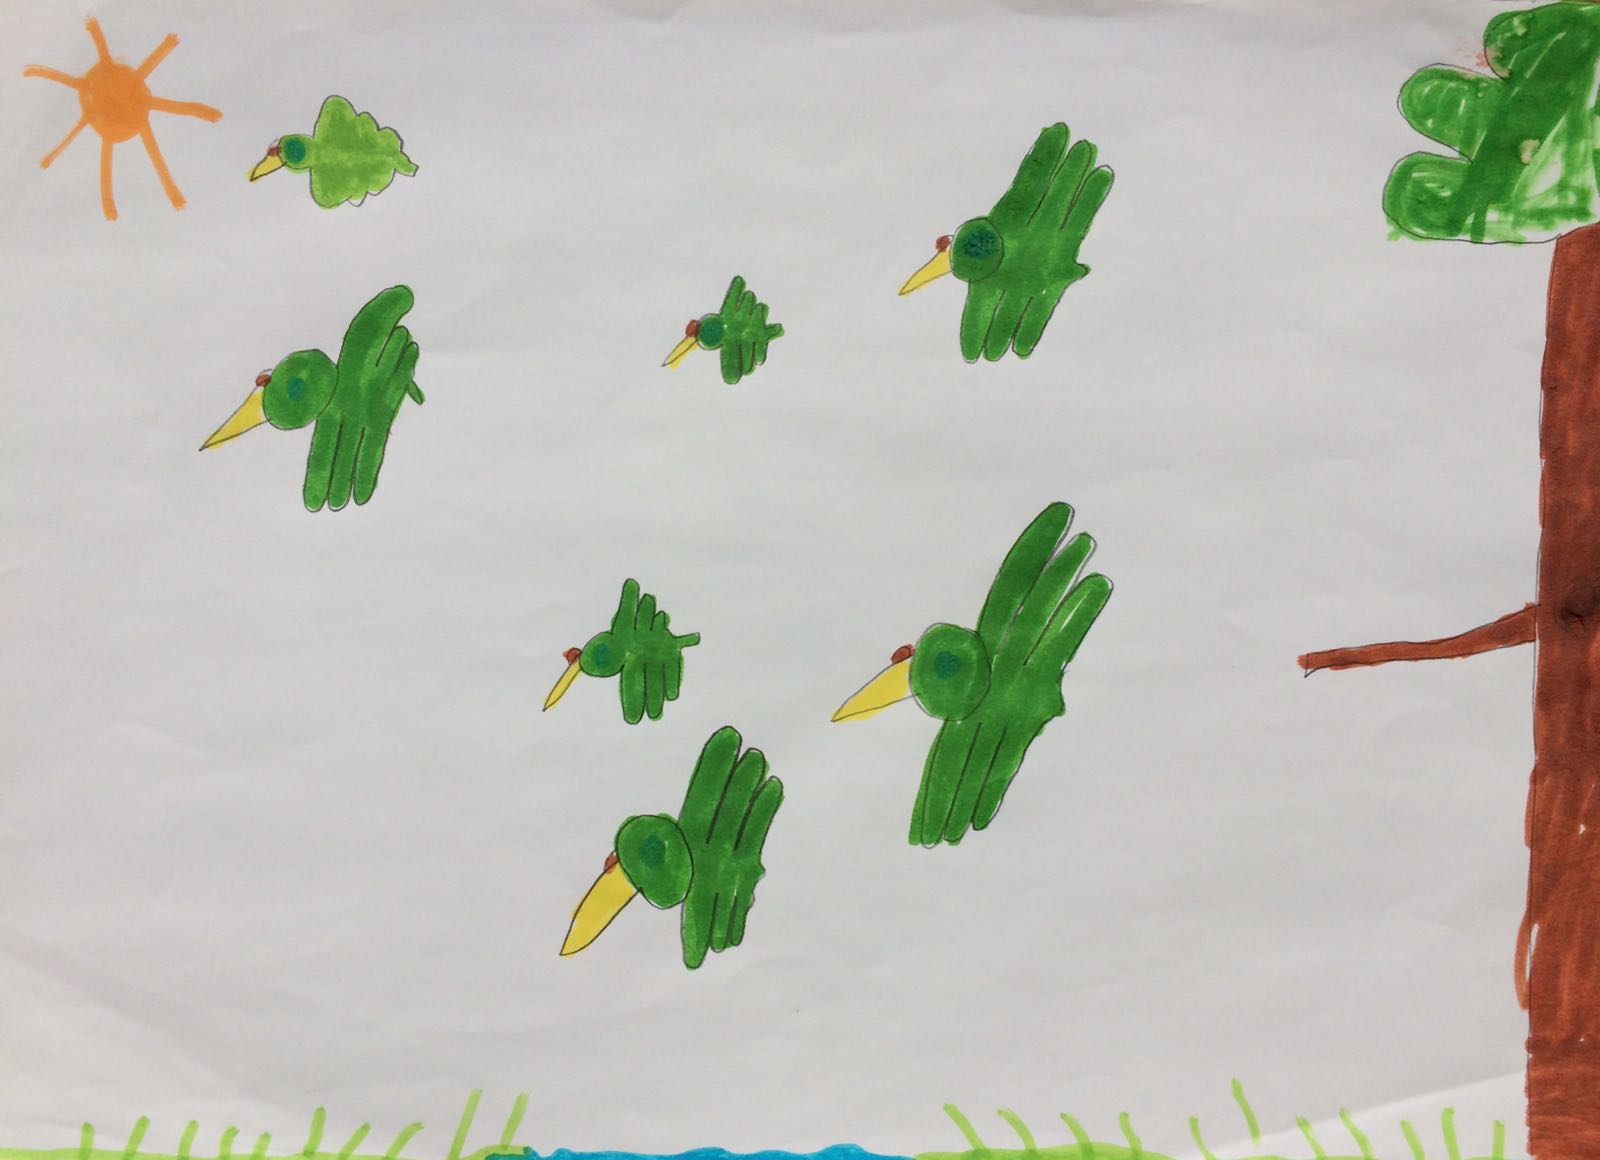 Birds flying, by Jerry